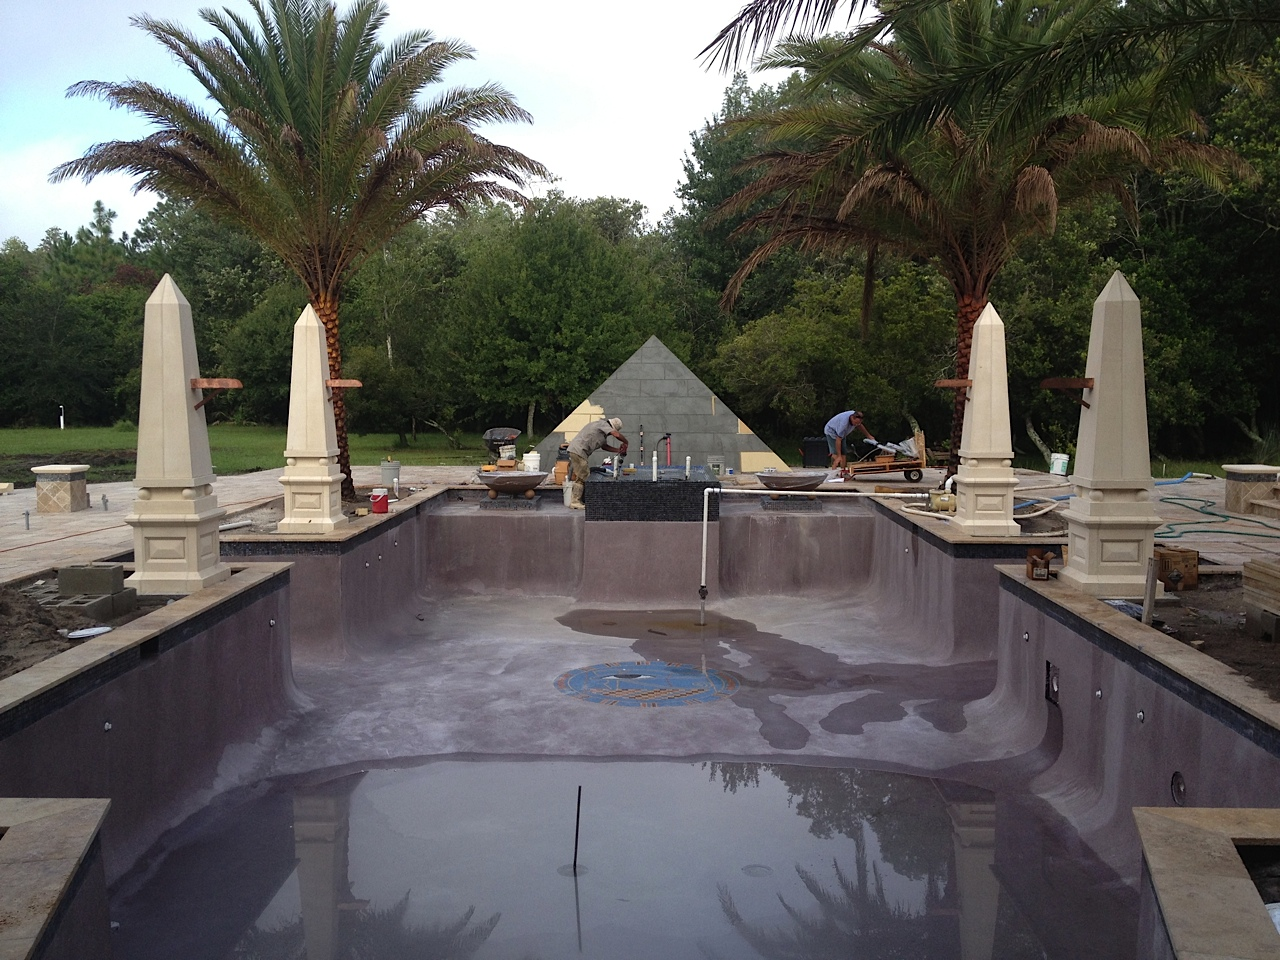 Egyptian Swimming Pool in Progress